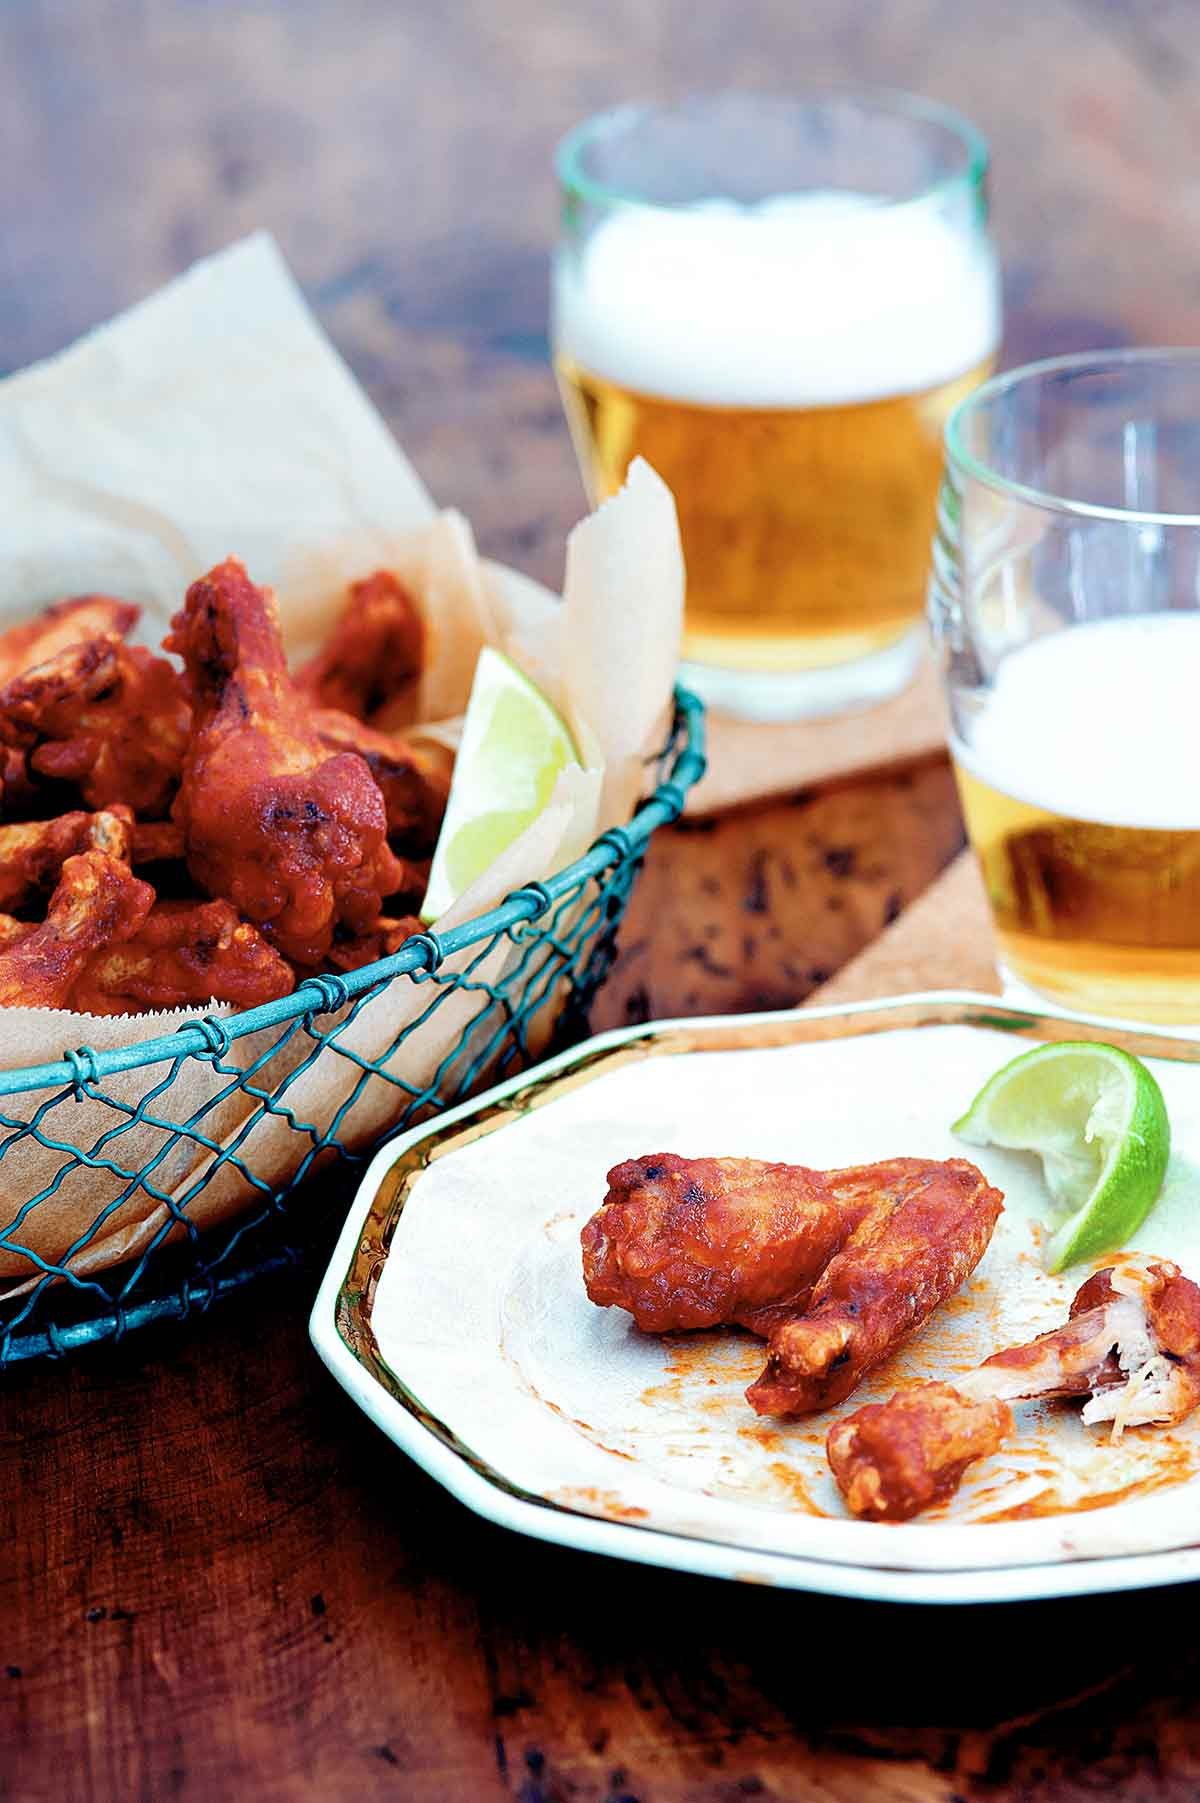 A basket of Sriracha chicken wings, two glasses of beer, and a plate with one eaten and one uneaten chicken wing and a wedge of lime.